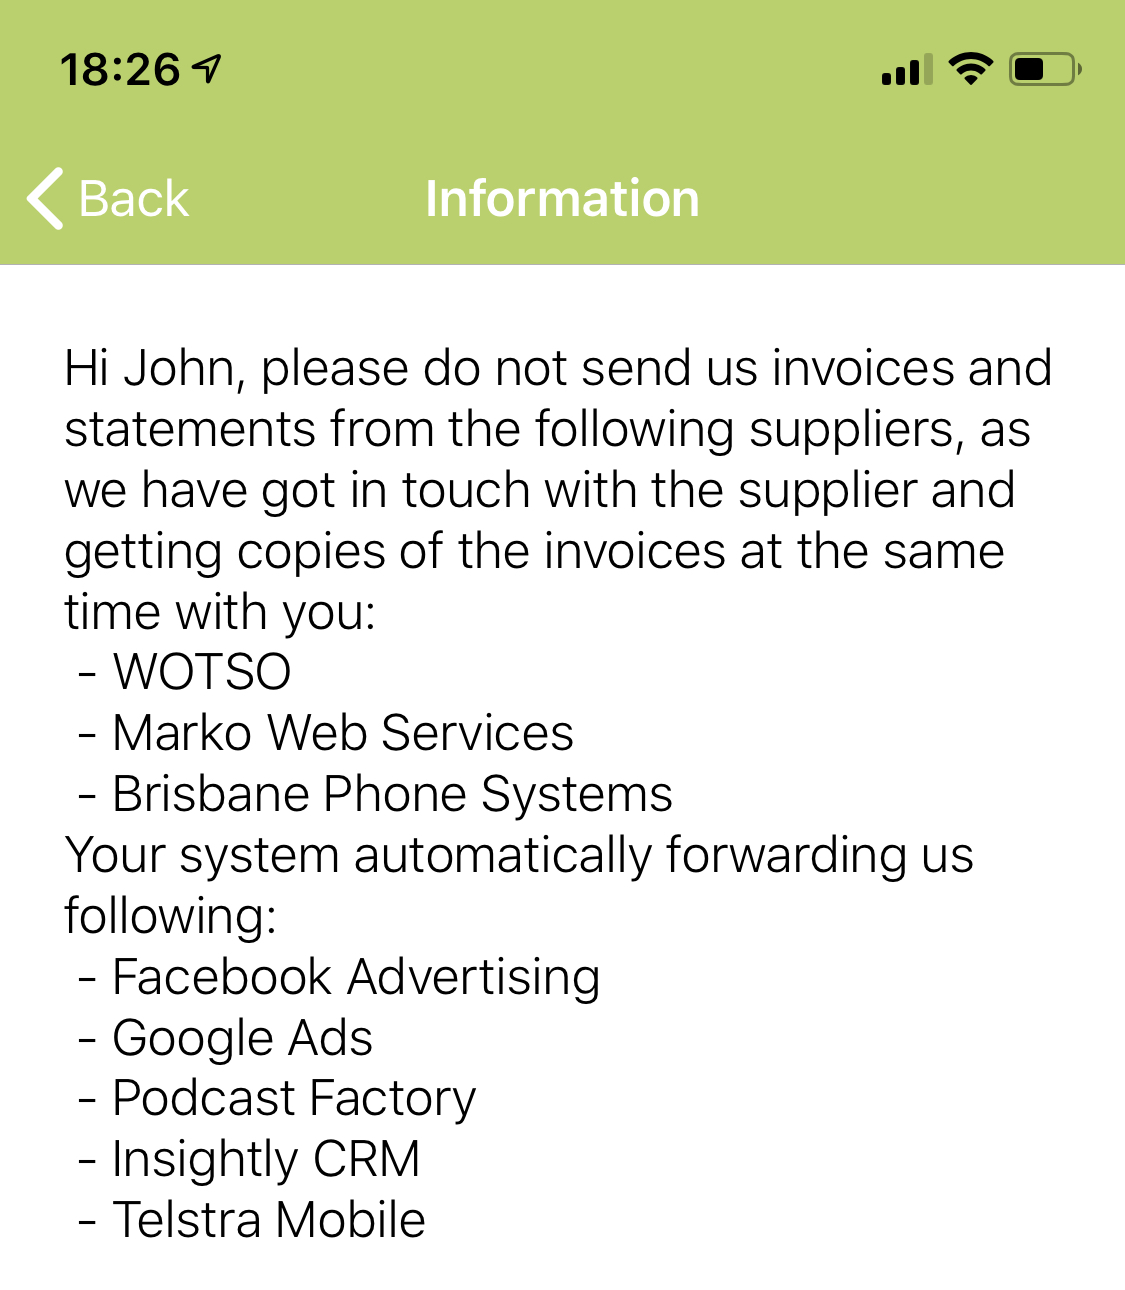 Bookkeeping Instructions Information What not to send